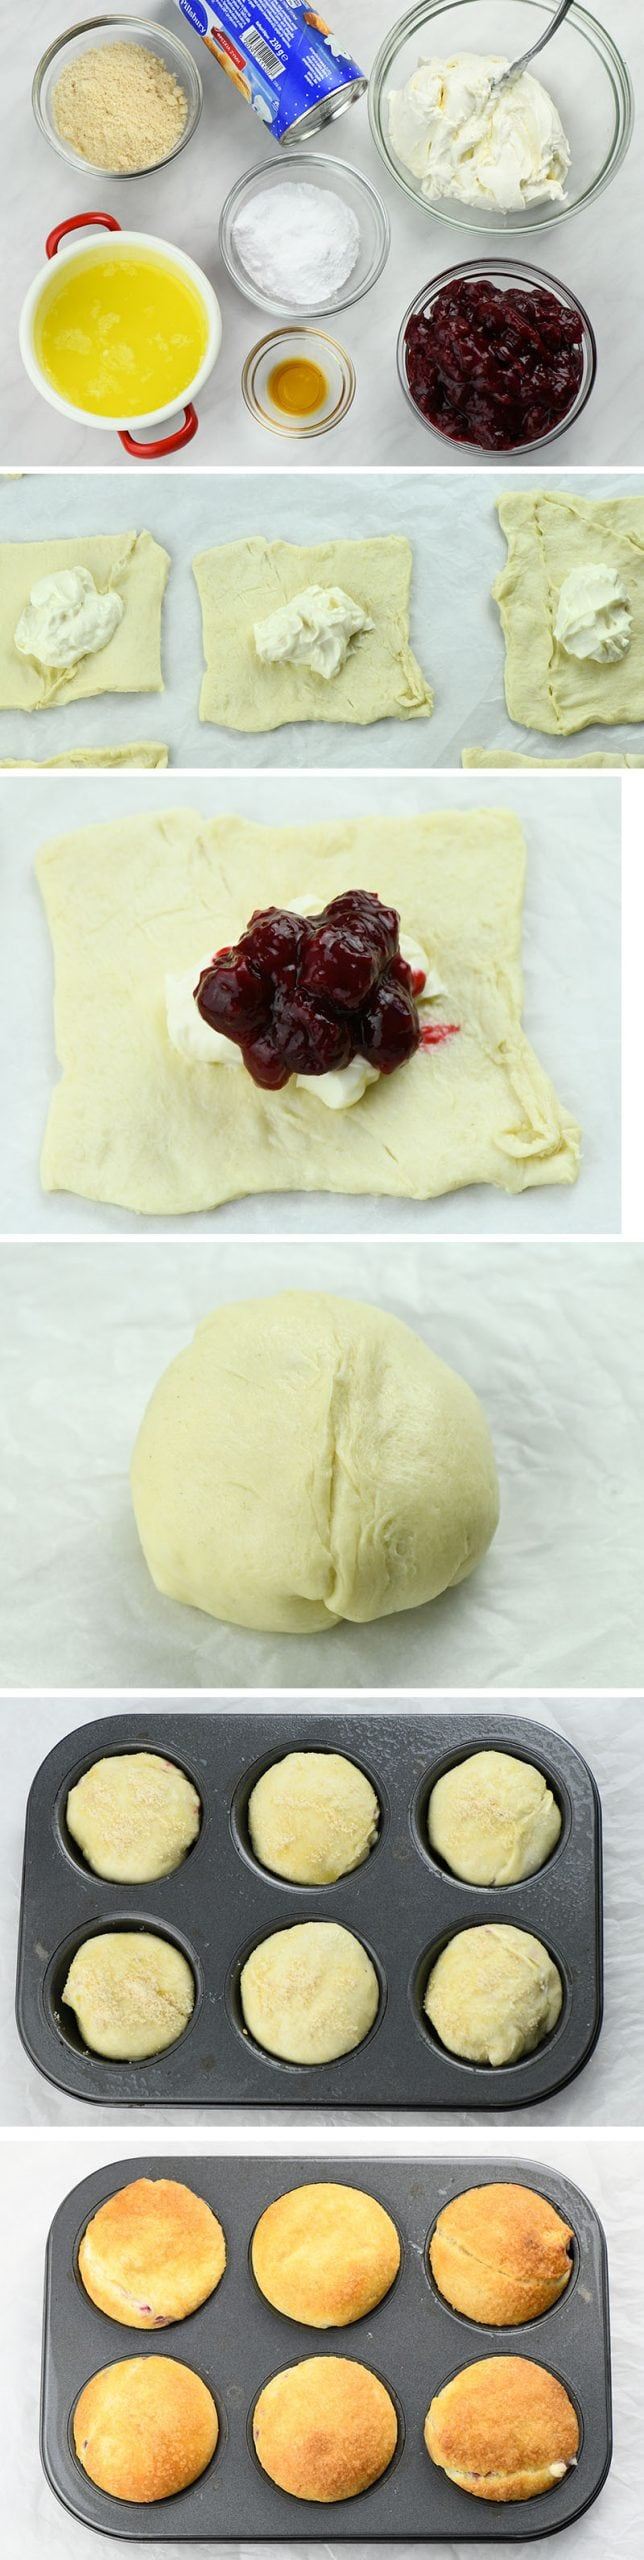 Cherry Cheesecake Crescent Muffins instructions step by step.